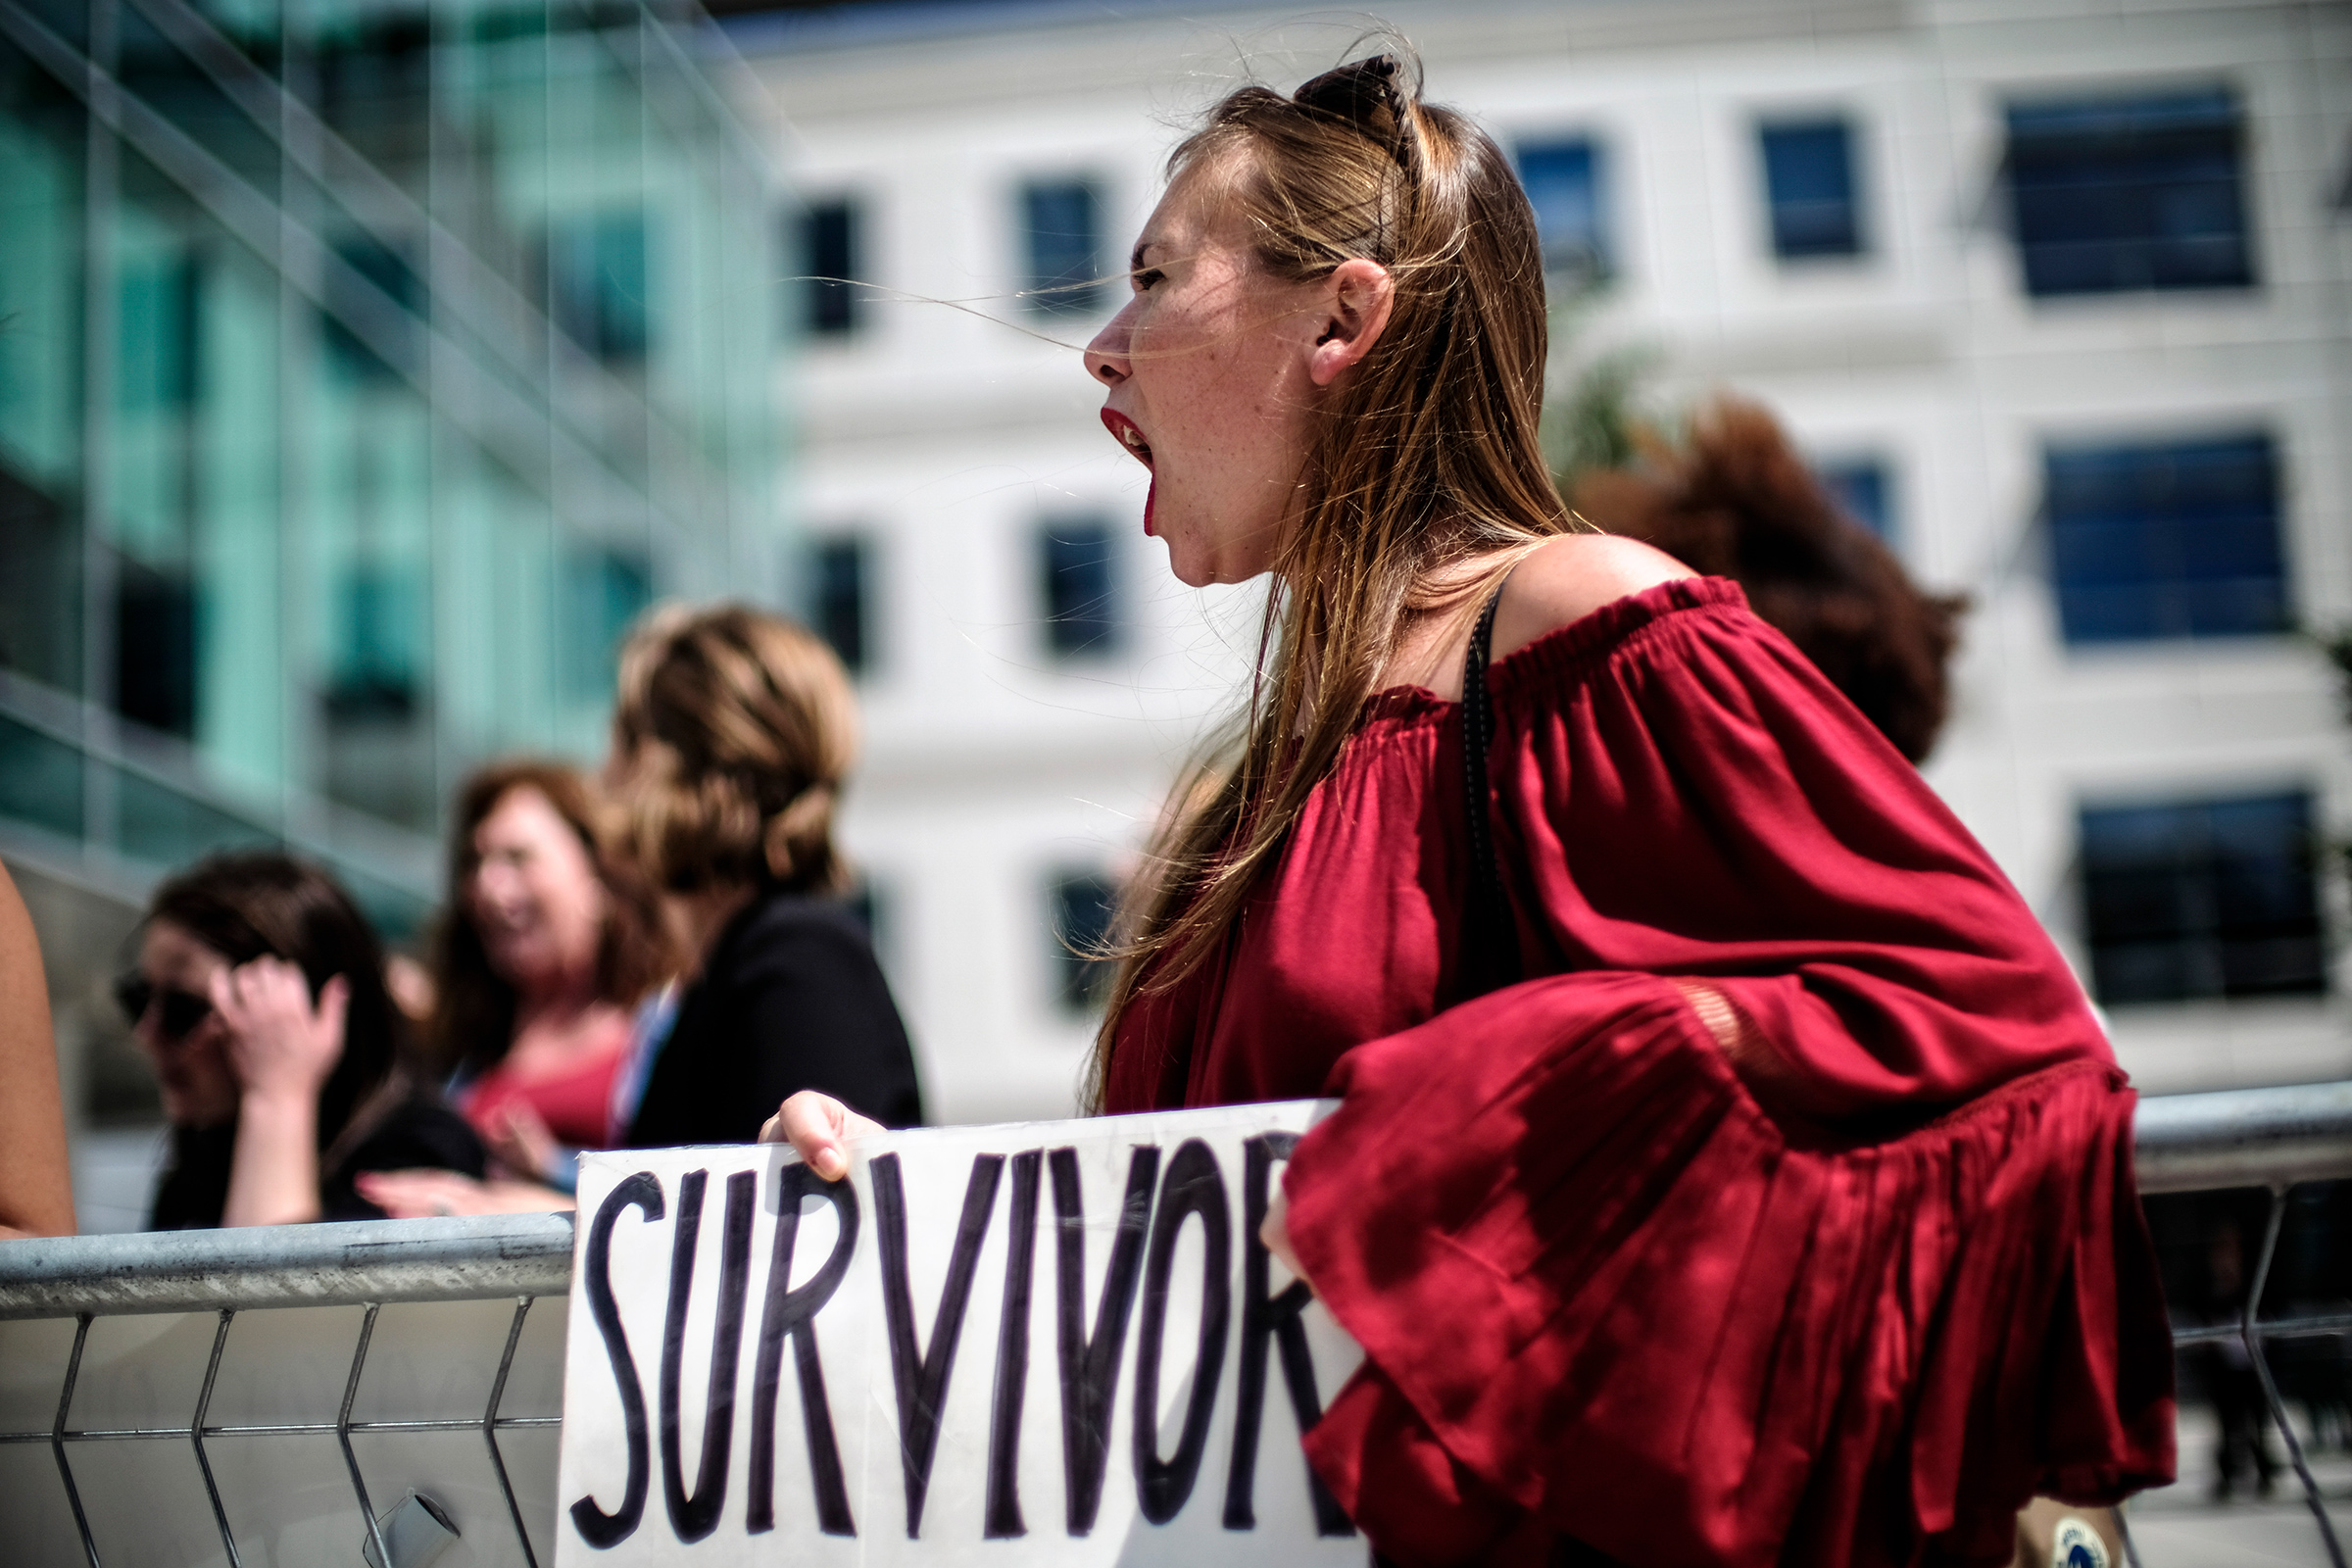 Meghan Downey protests outside as U.S. Education Secretary Betsy DeVos announces changes in federal policy on rules for investigating sexual assault reports on college campuses in Arlington, Virginia  on Sep. 7, 2017.